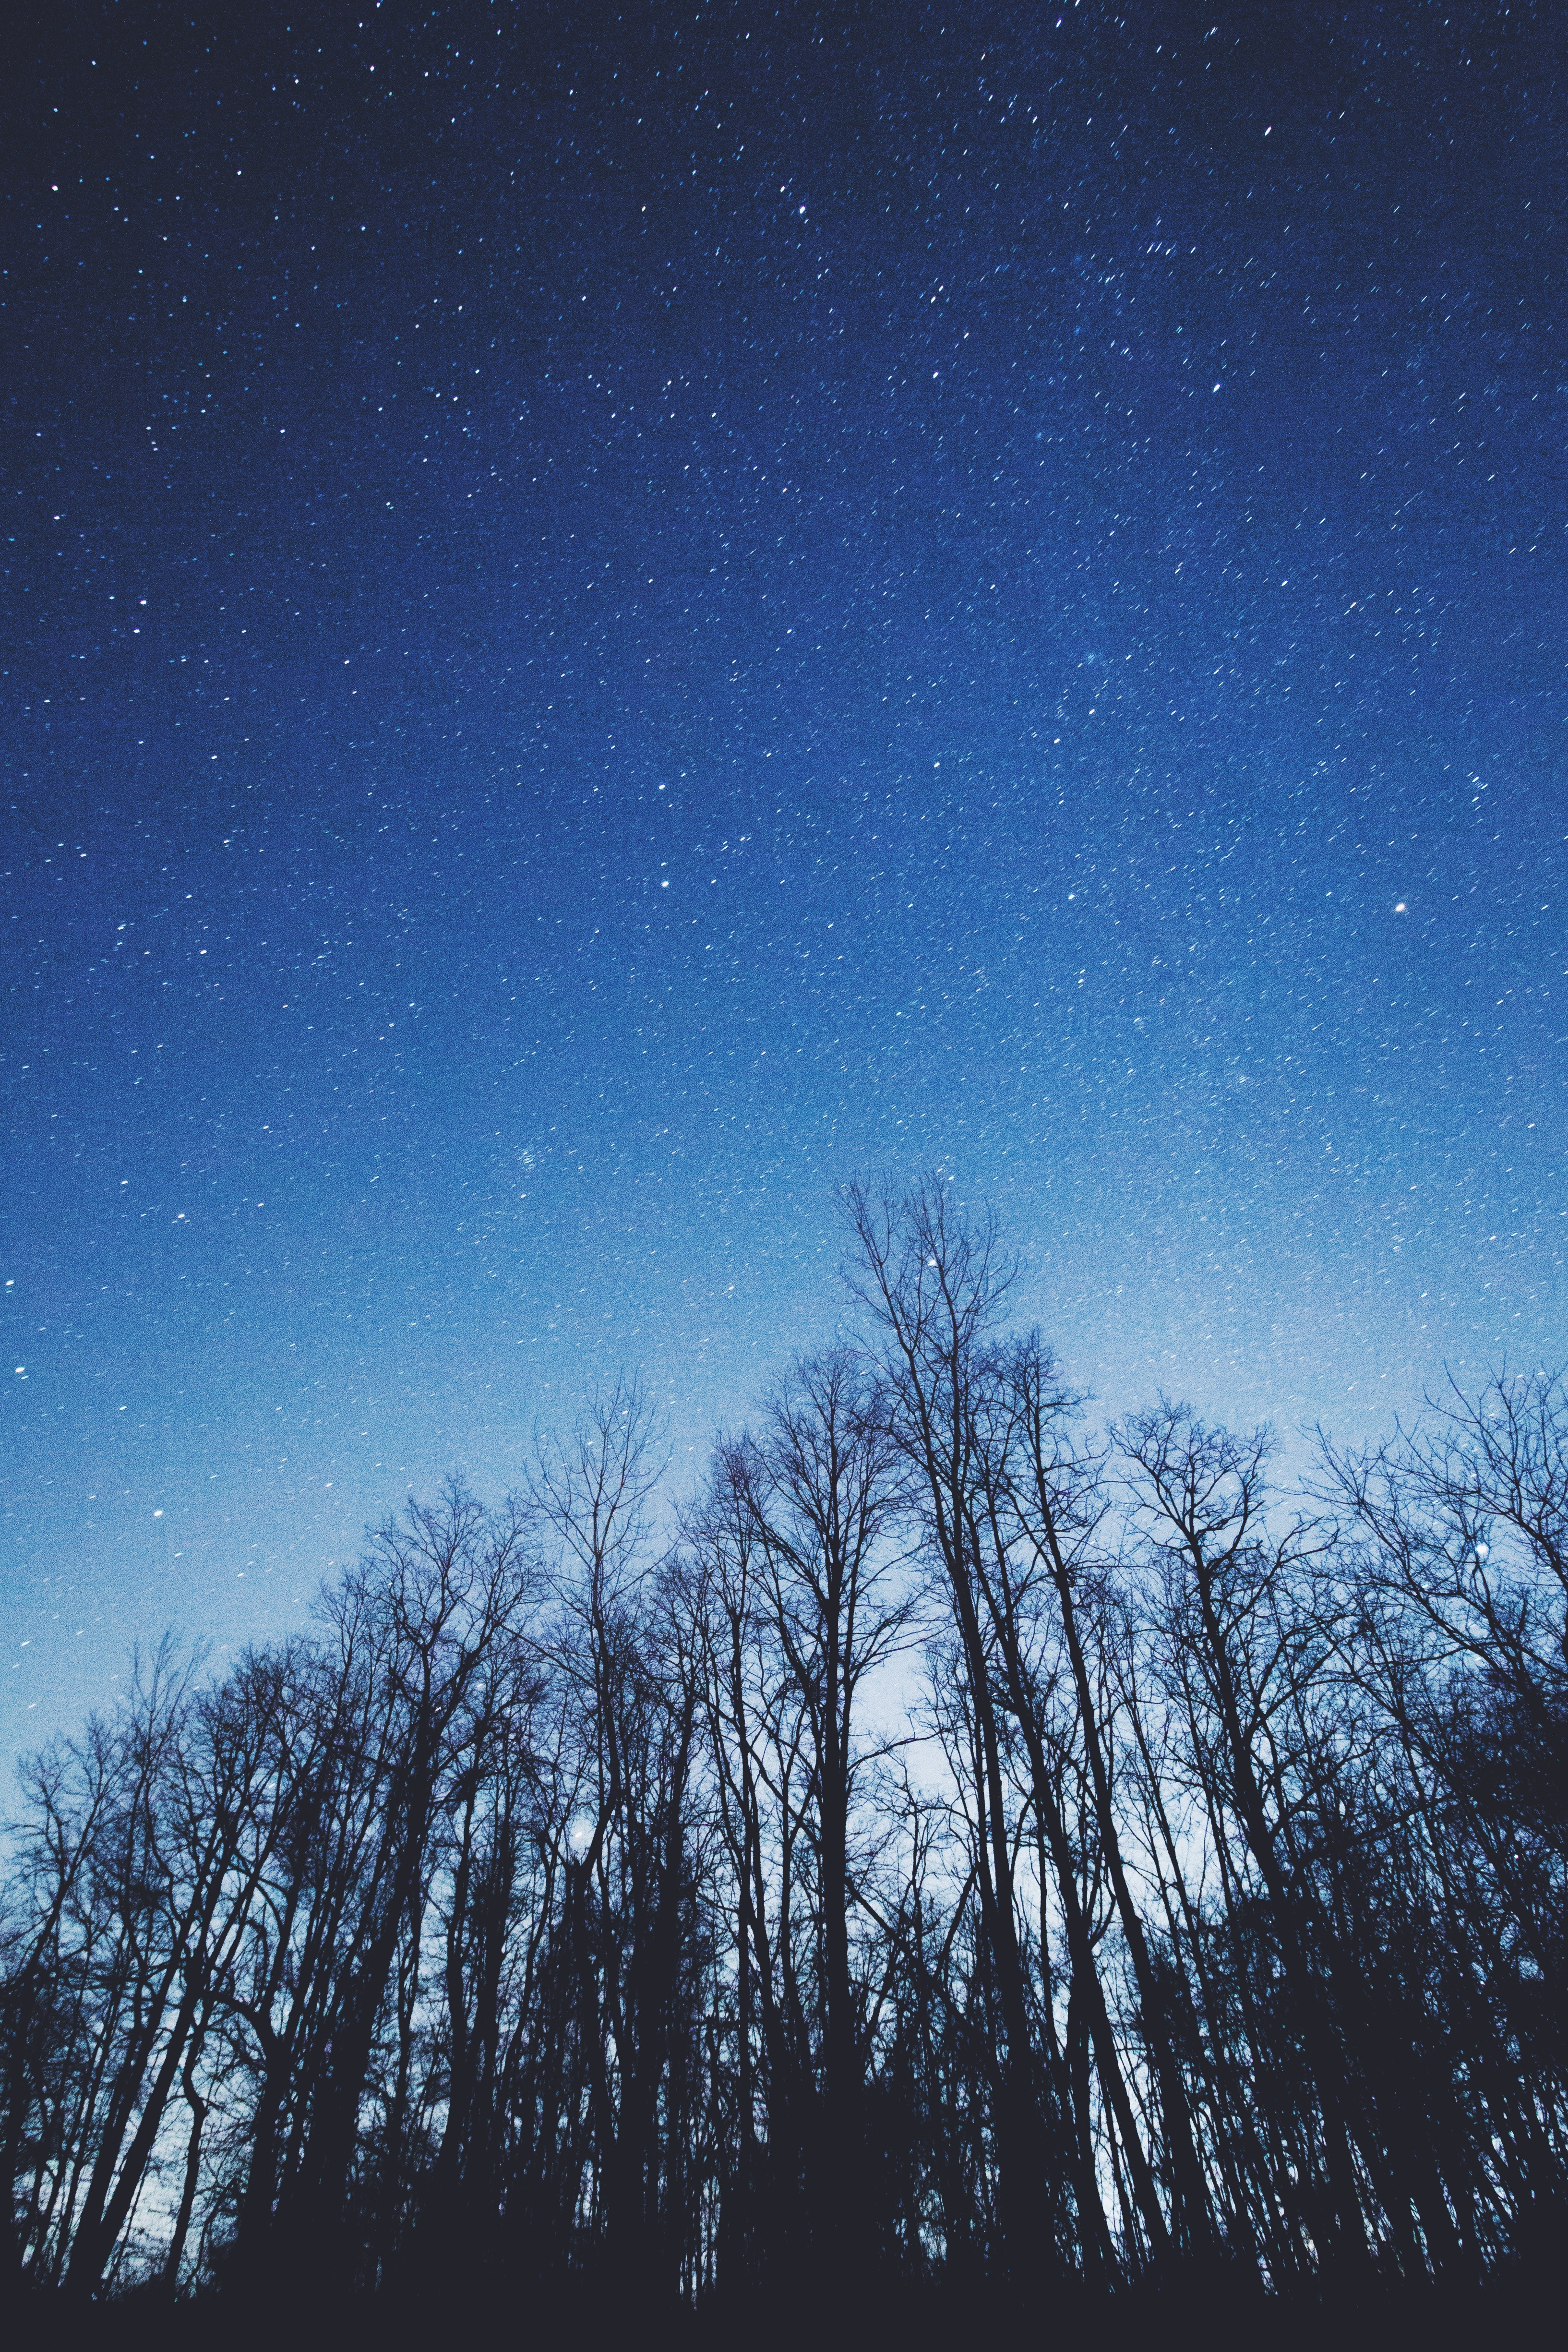 107594 download wallpaper Starry Sky, Nature, Trees, Sky, Night screensavers and pictures for free